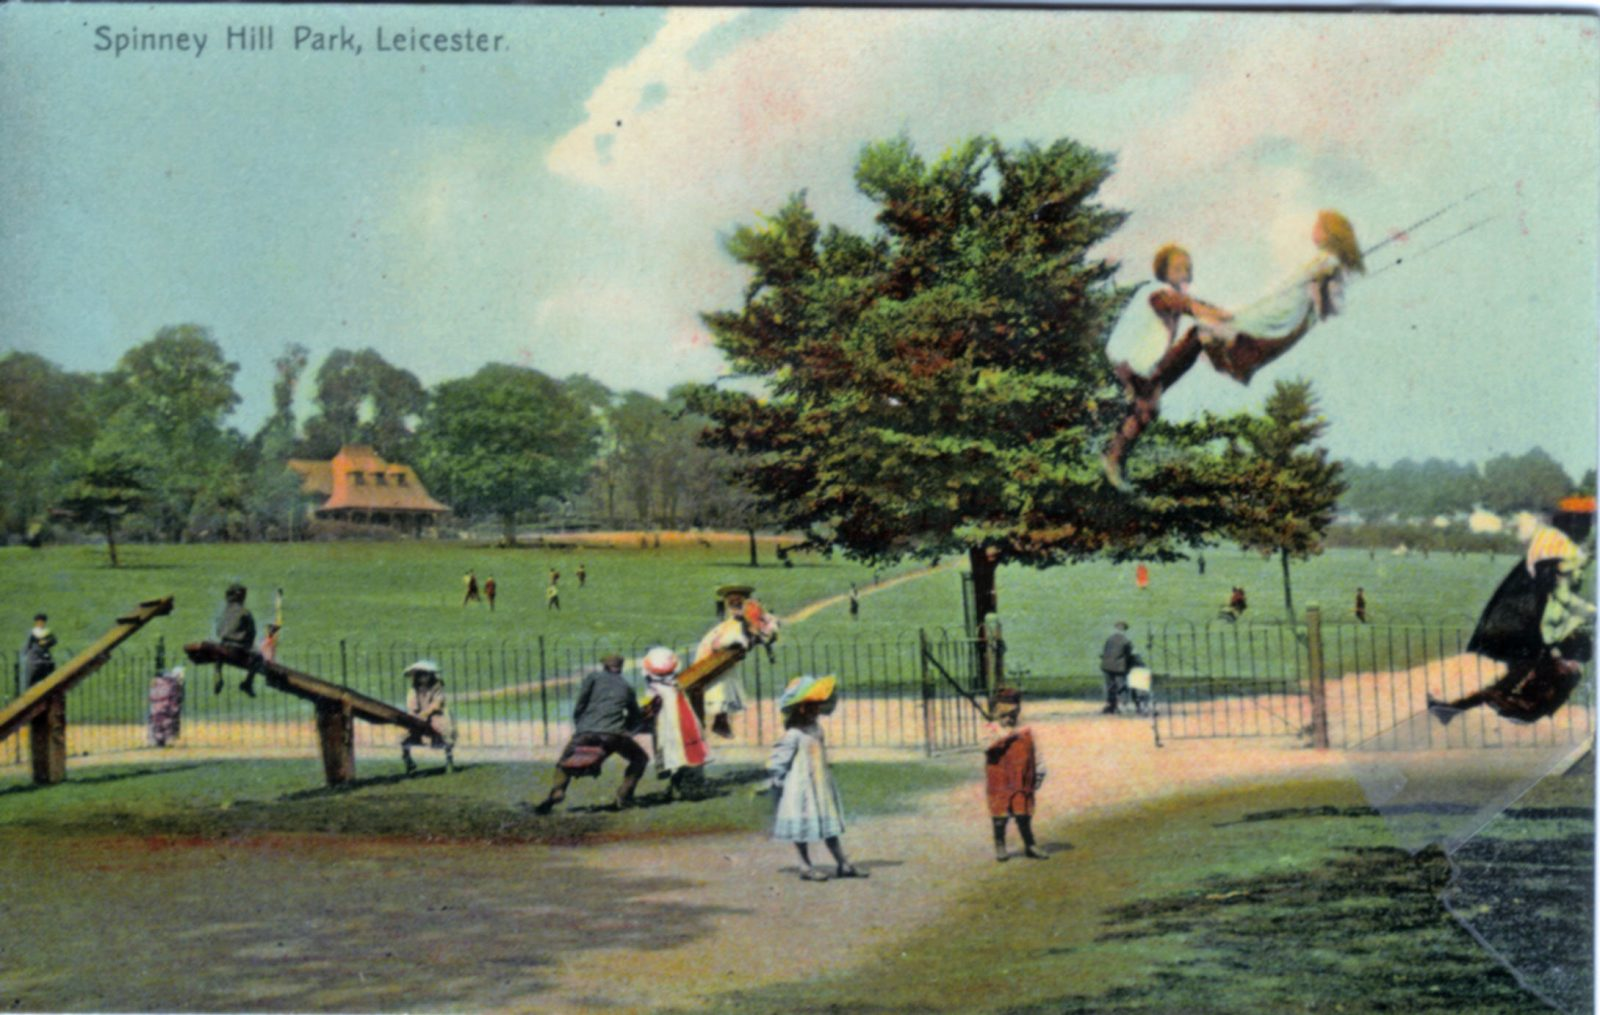 Spinney Hill Park, Leicester. 1901-1920: Children's Play Ground with children playing on swings and seesaws. (File:1063)